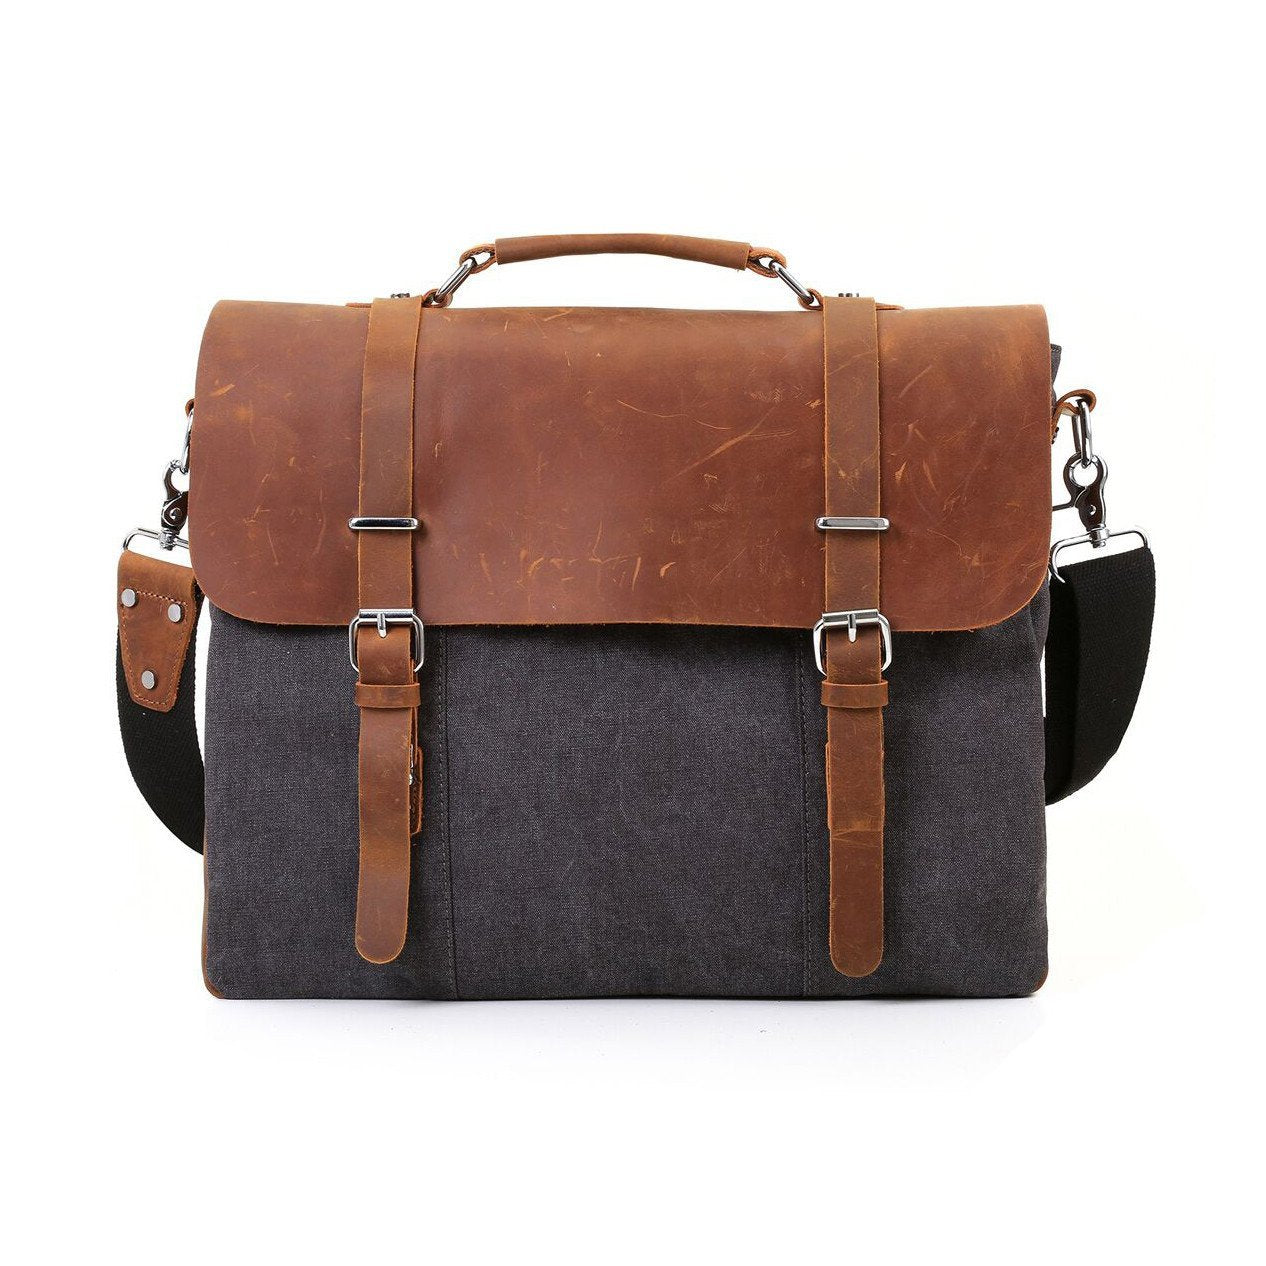 Vintage Canvas Leather Briefcase chrynne.com Men's Bags 136.20